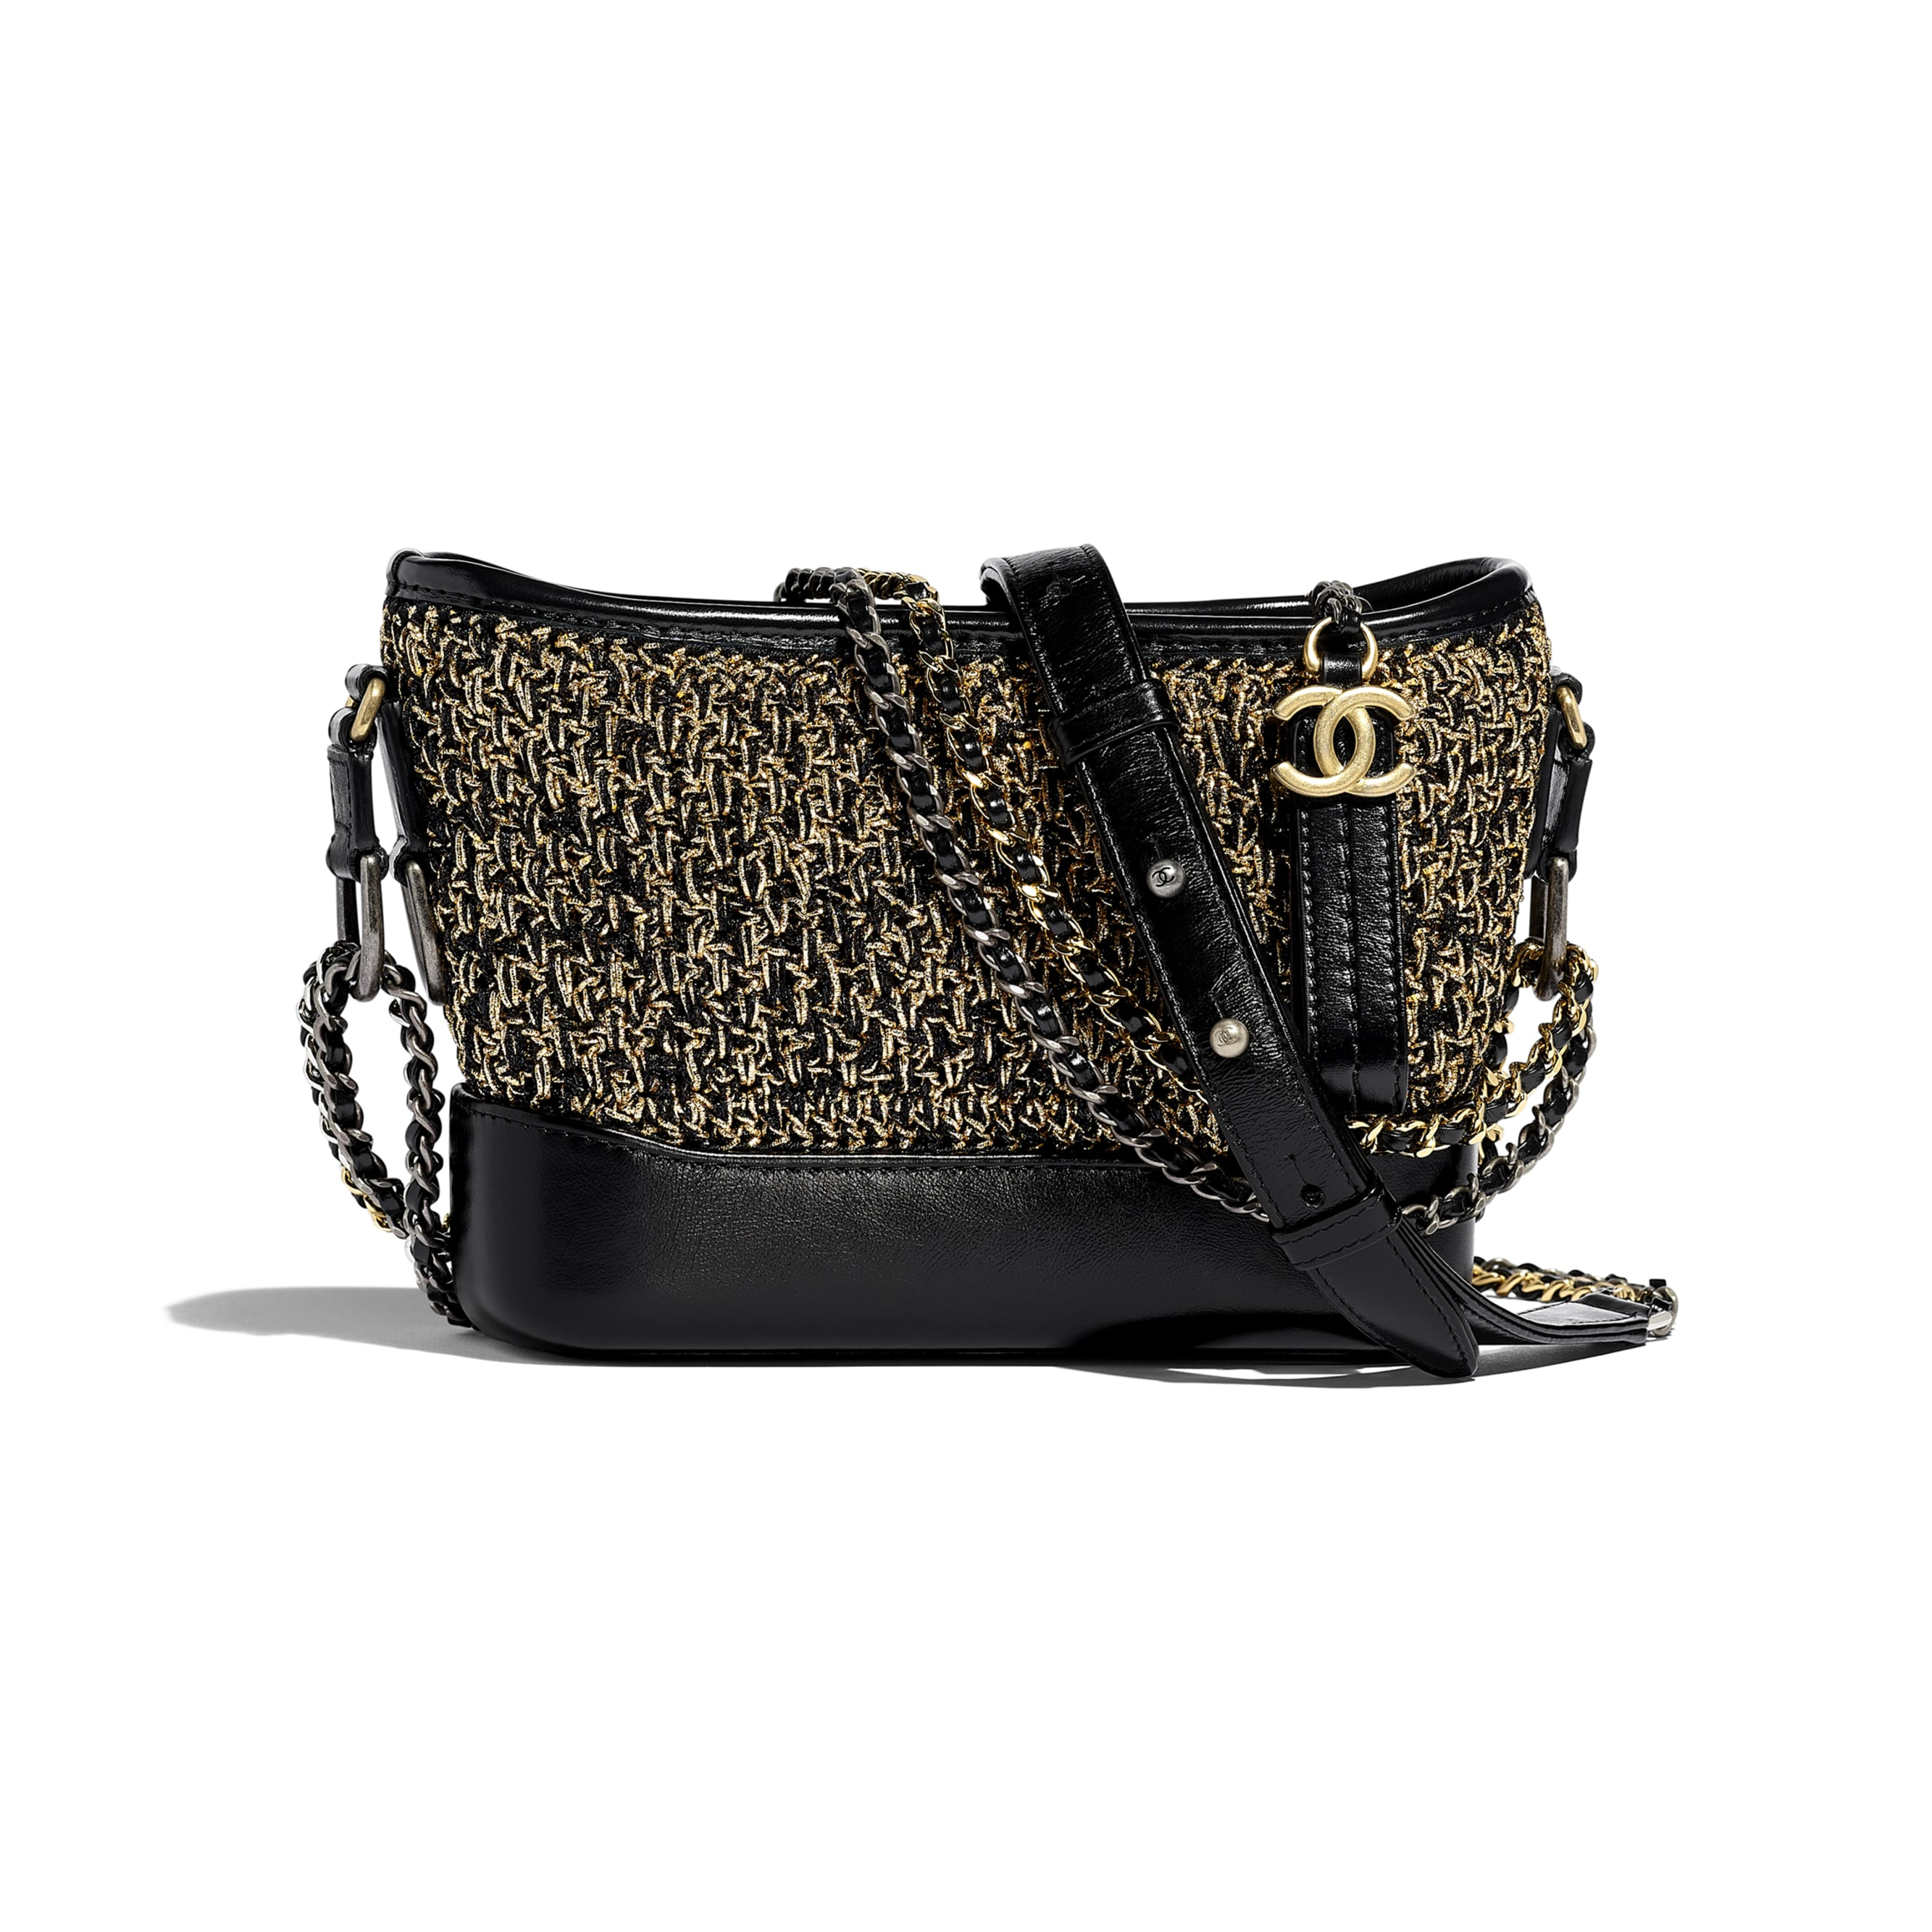 CHANEL'S GABRIELLE Small Hobo Bag - Black & Gold - Cotton, Calfskin, Gold-Tone & Silver-Tone Metal - Default view - see standard sized version